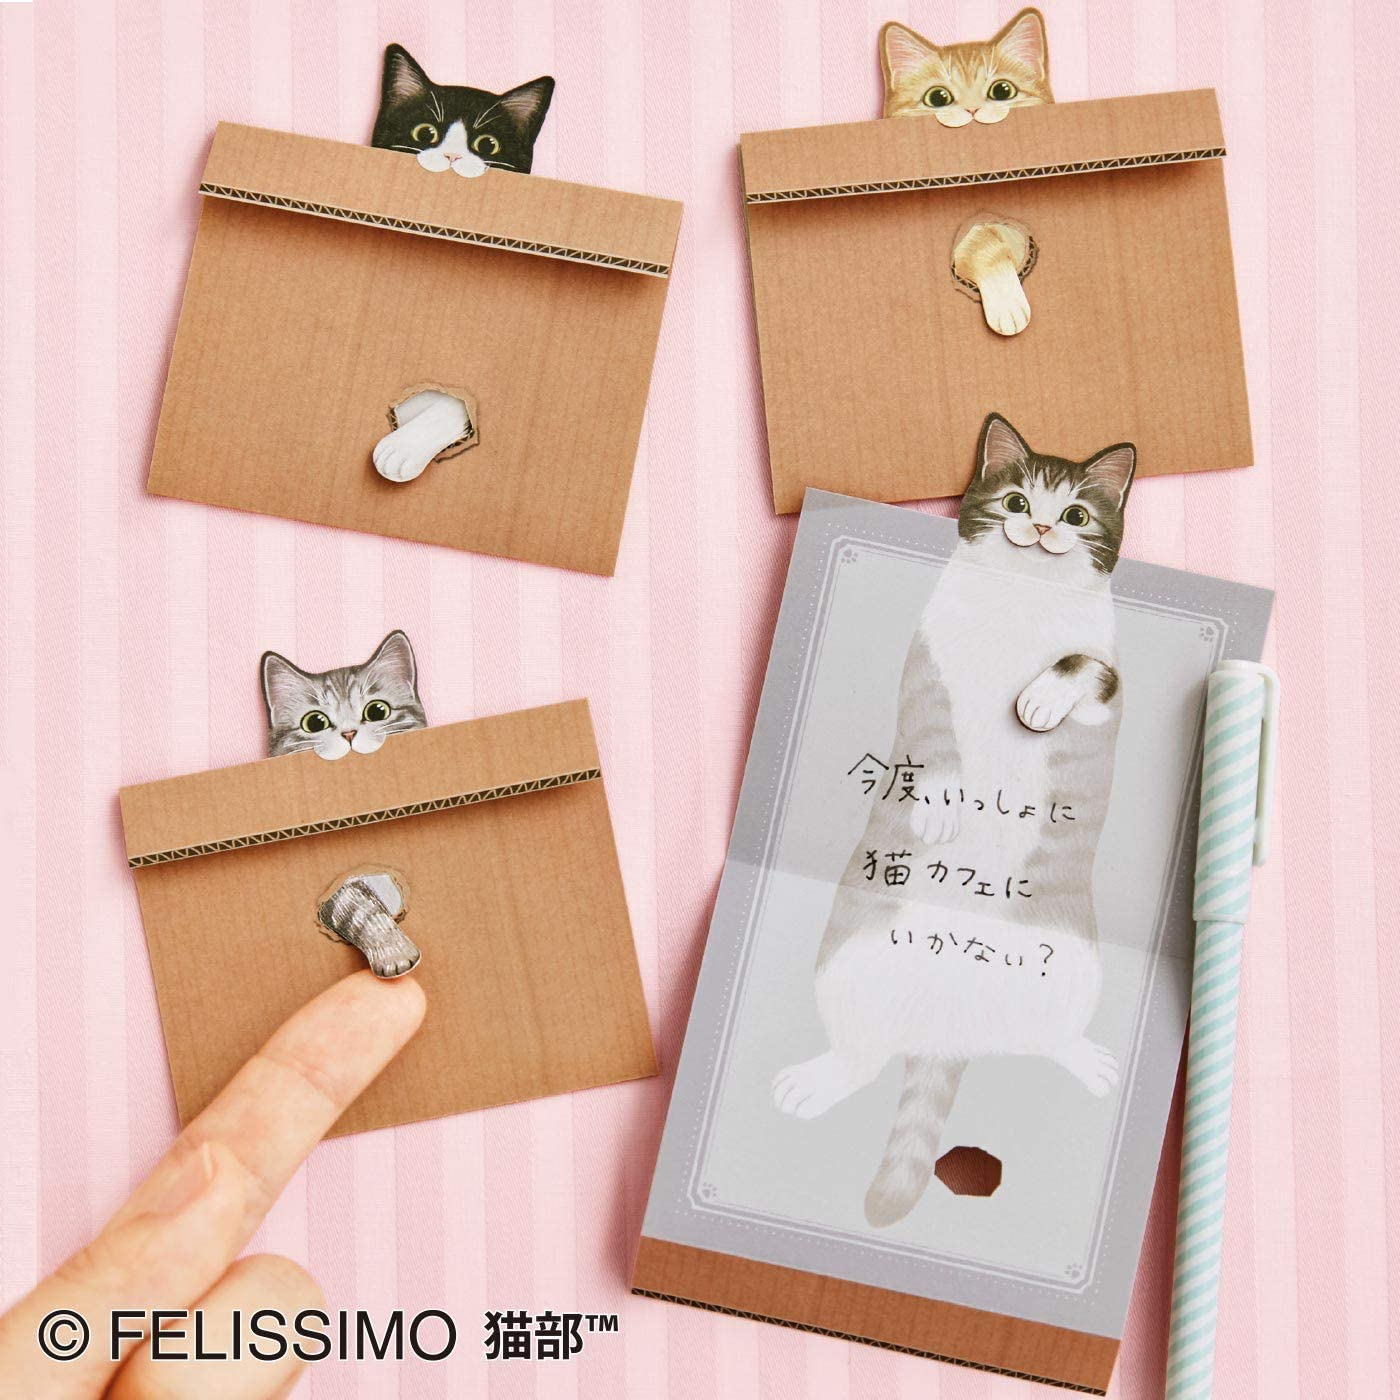 Nekobu Note pads - Flip the paws and secure the cover - Fun and cute look with cats in the cardboard box! About 6 x 3 inch note pads - 40 sheets per pad (Pink)